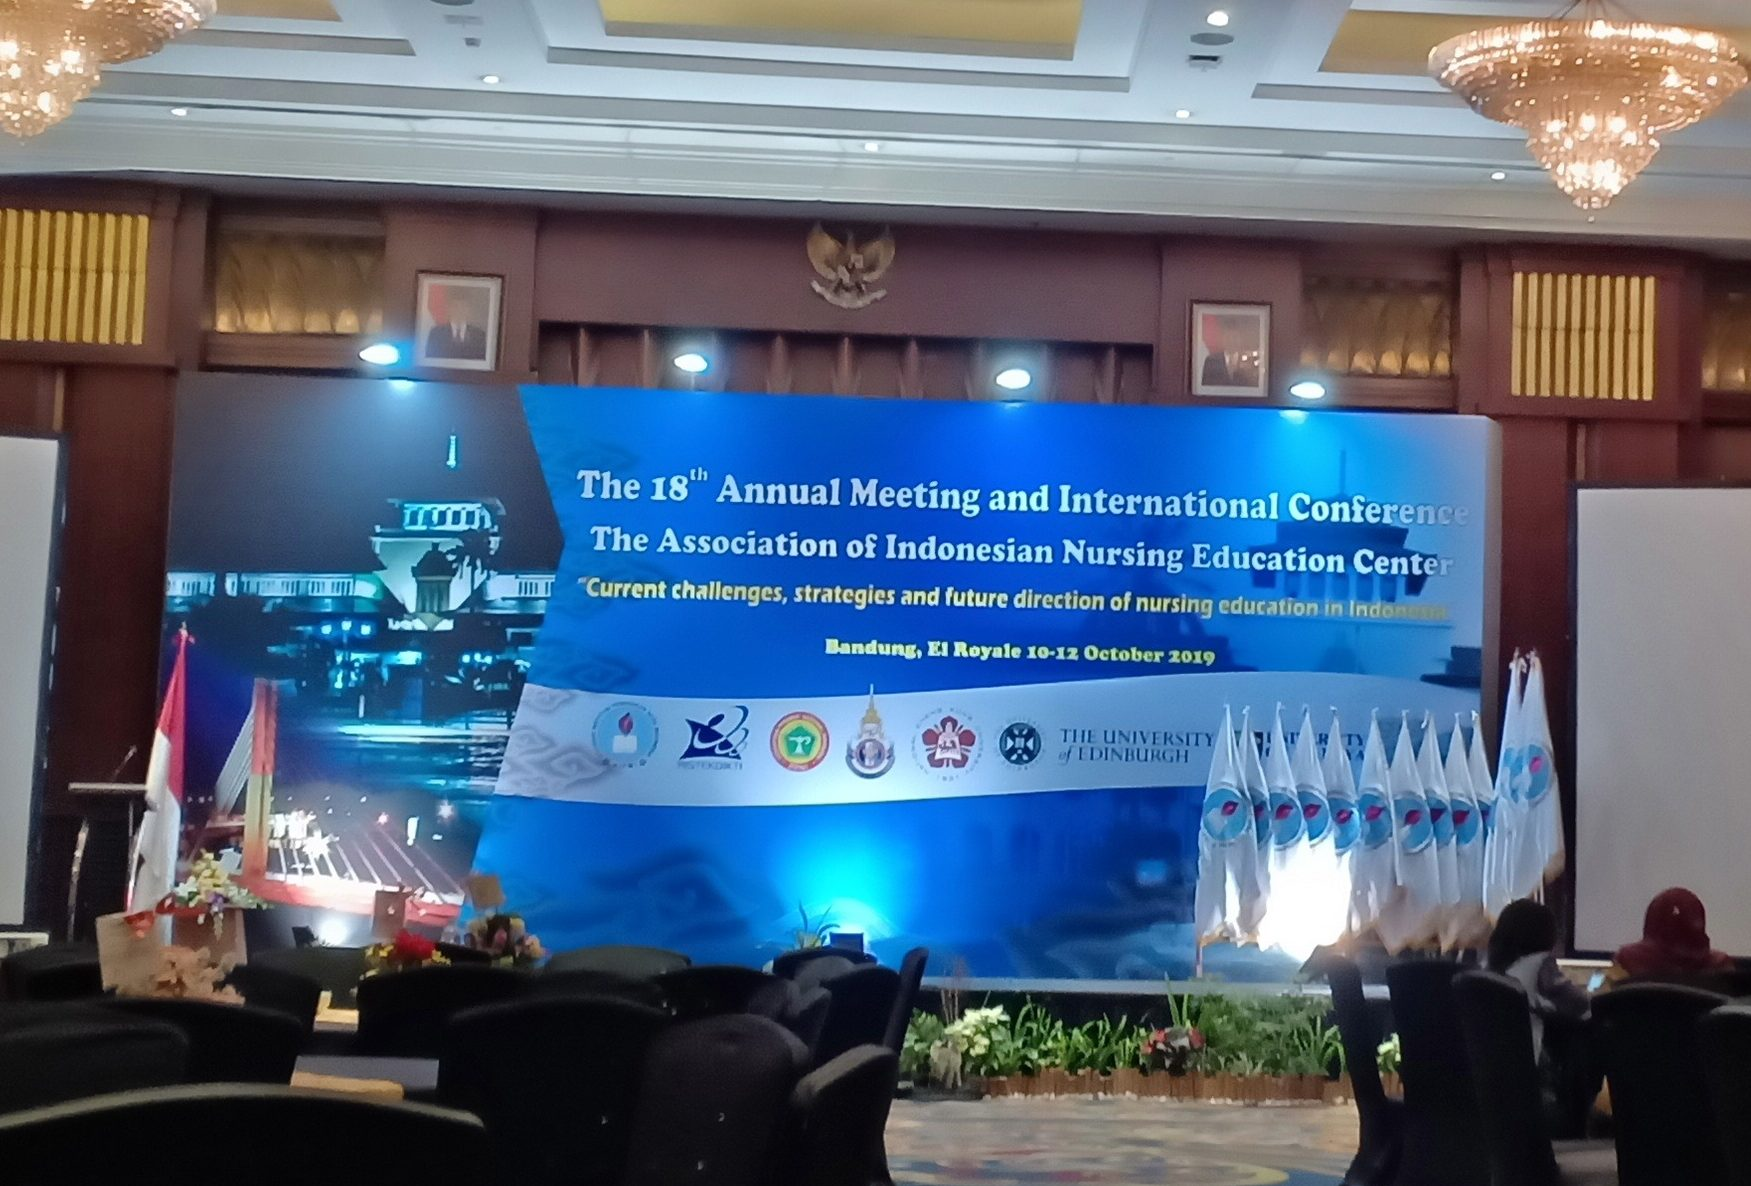 The 18th Annual Meeting and International Conference The Association of Indonesia Nursing Education Center (AINEC)